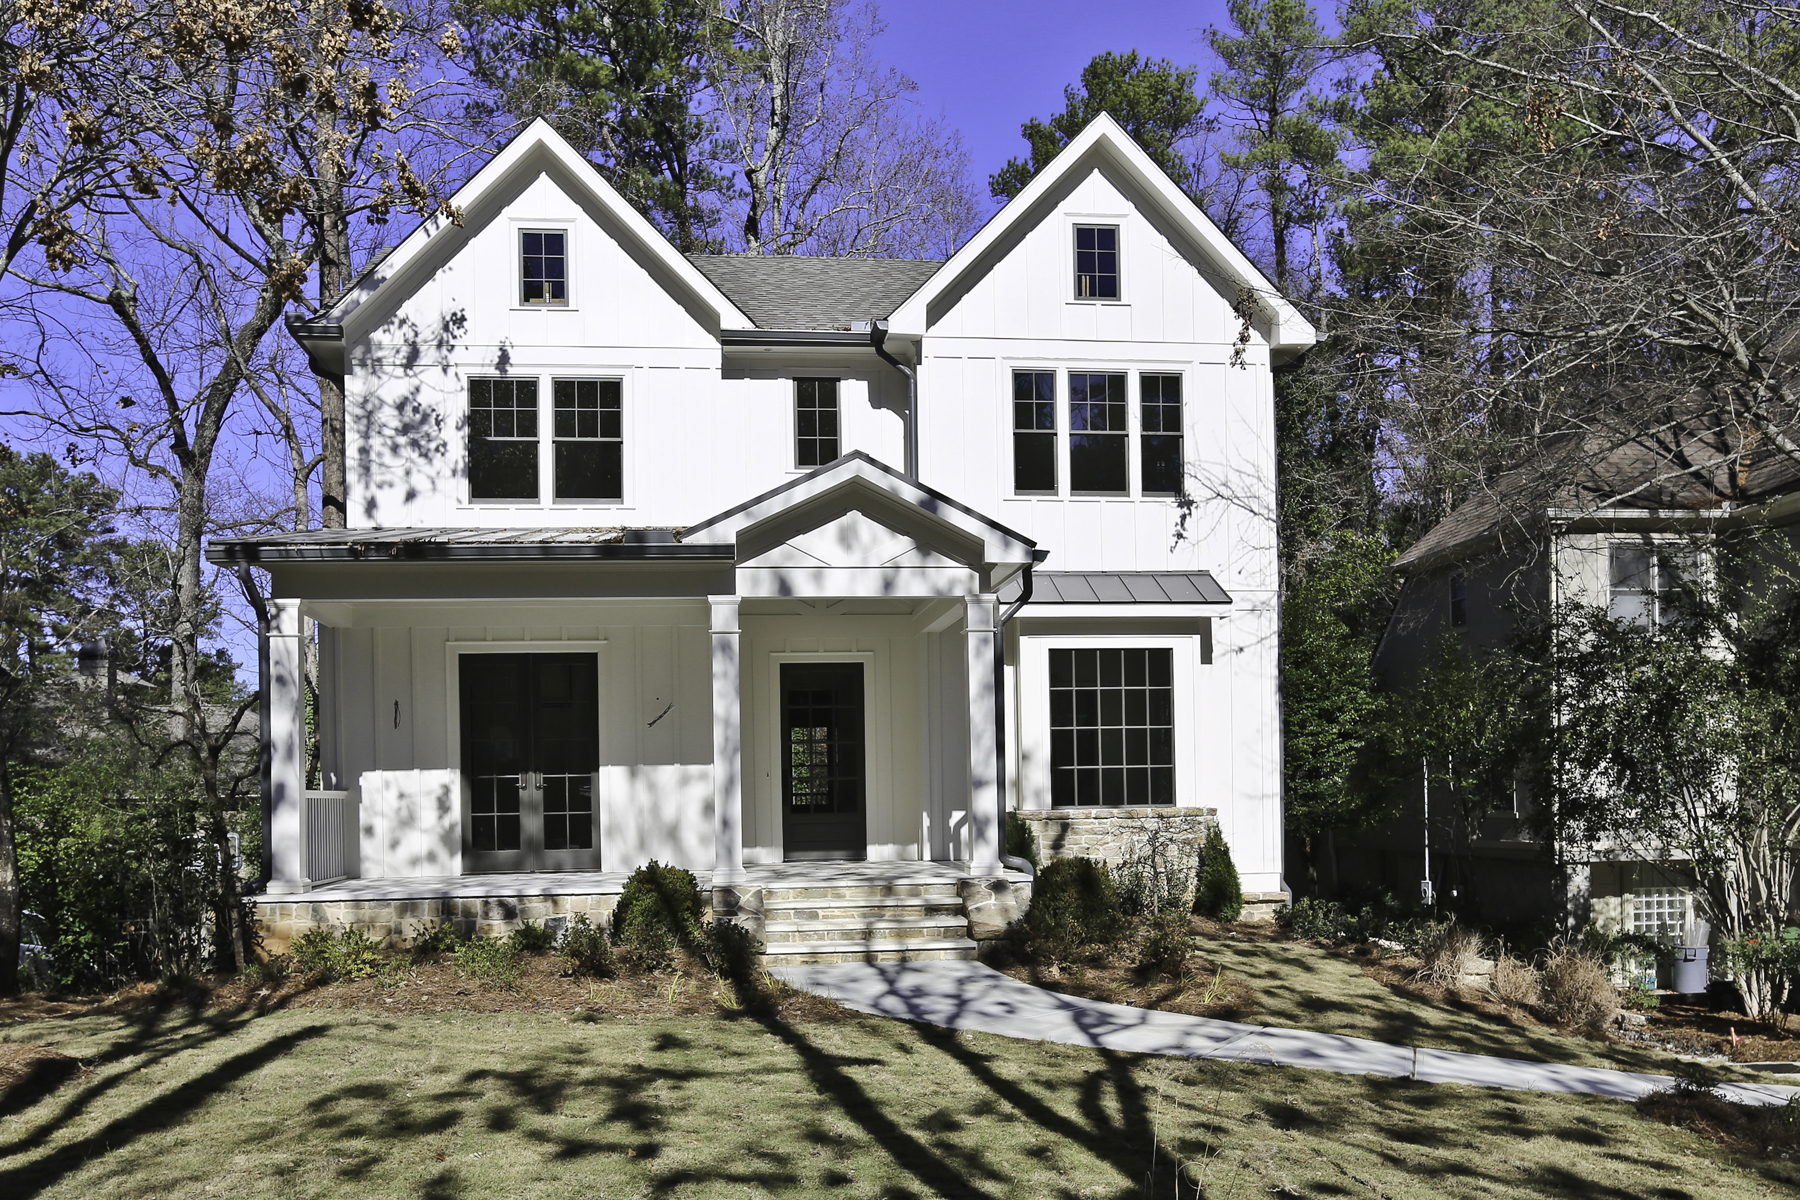 Single Family Home for Active at New Construction by JackBilt Homes. 870 Wildwood Road NE Atlanta, Georgia 30324 United States